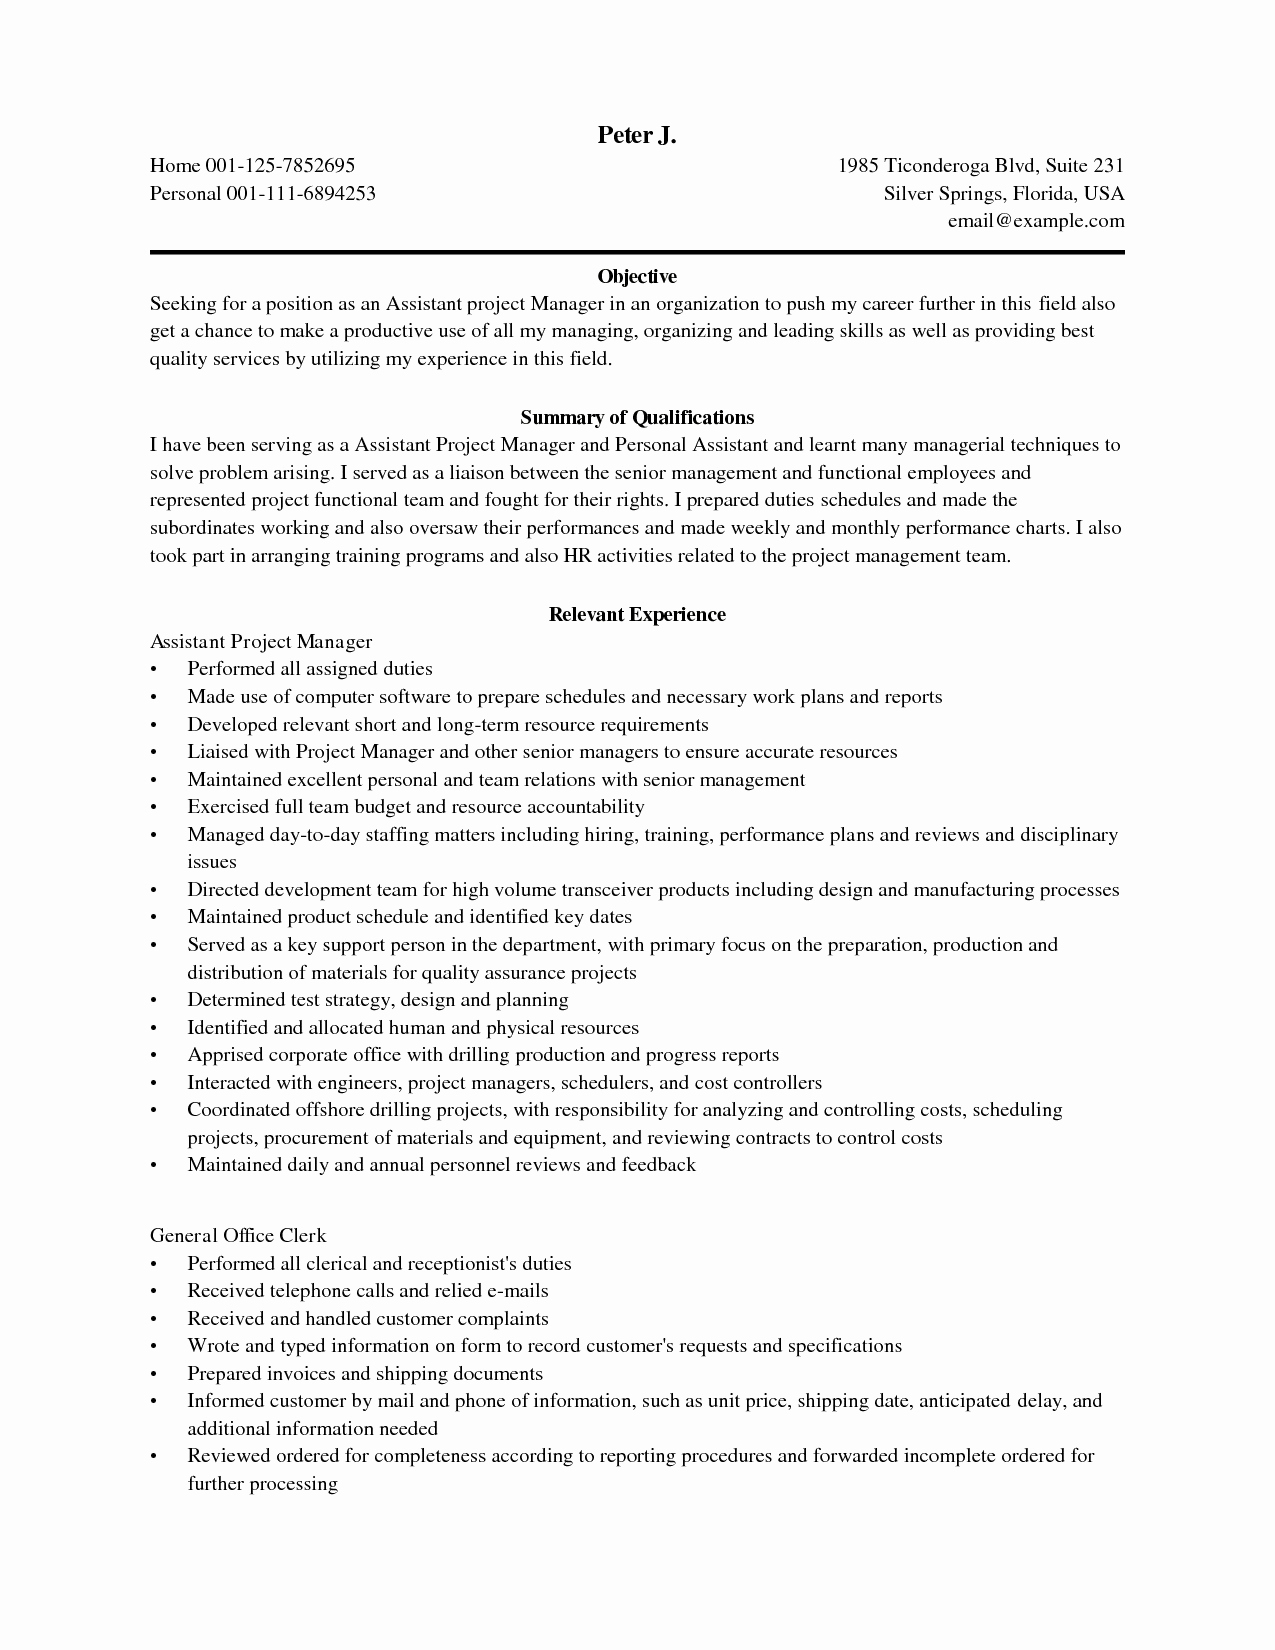 restaurant manager resume duties Collection-Restaurant Manager Resume Sample Elegant Grapher Resume Sample Beautiful Resume Quotes 0d Restaurant 11-k